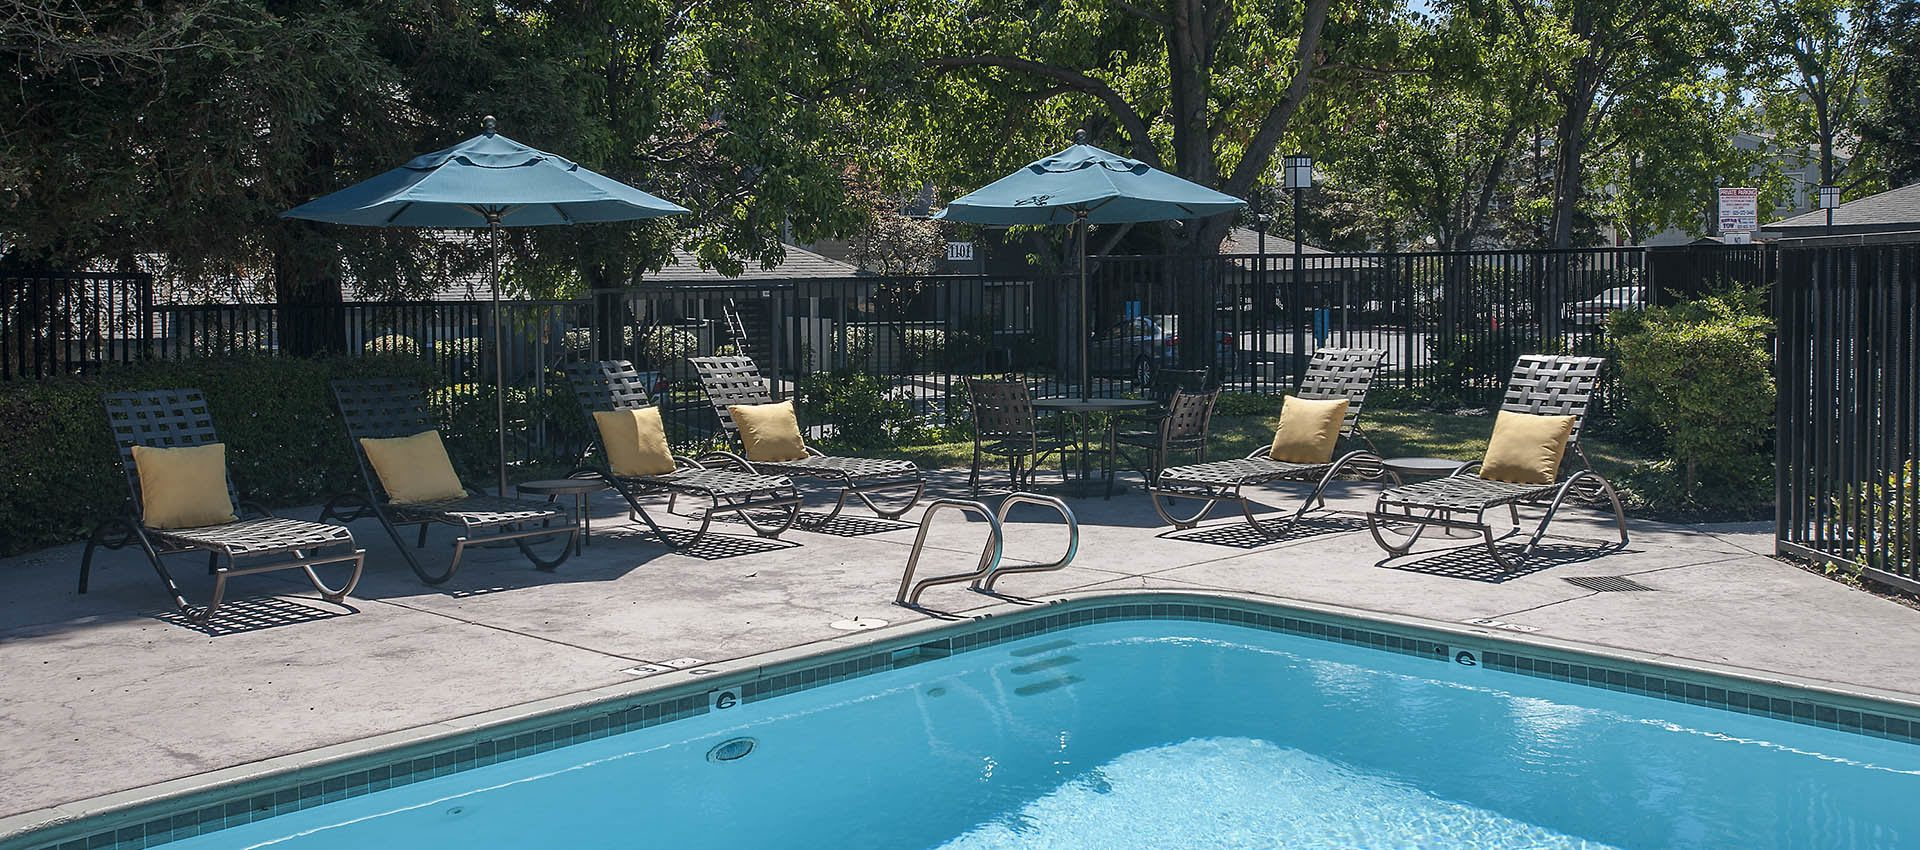 Sunchairs Around Pool at Plum Tree Apartment Homes in Martinez, CA